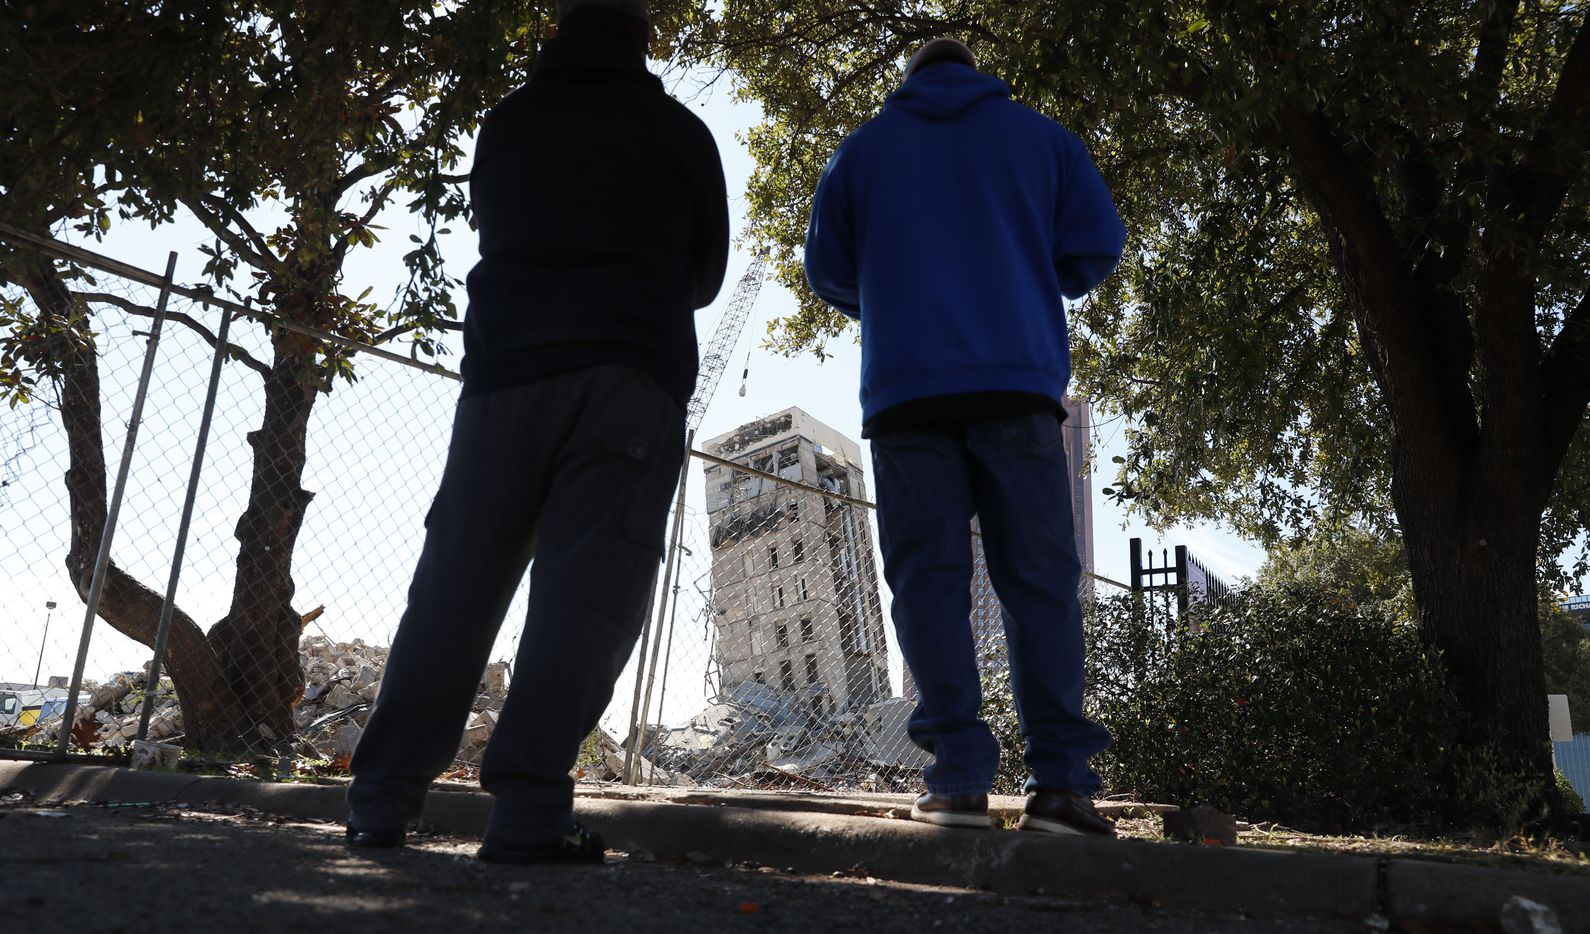 """People gather to watch the demolition of the so called """"Leaning Tower of Dallas"""" as a wrecking ball works to topple the structure north of downtown Dallas, Monday, Feb. 24, 2020. The still standing structure is part of an 11-story building that found a second life online after surviving a first demolition attempt. The former Affiliated Computer Services building inspired jokes and comparisons to Italy's Leaning Tower of Pisa when a Feb. 16 implosion failed to bring down its core. The company that engineered the blast said some explosives did not go off. (AP Photo/LM Otero)"""